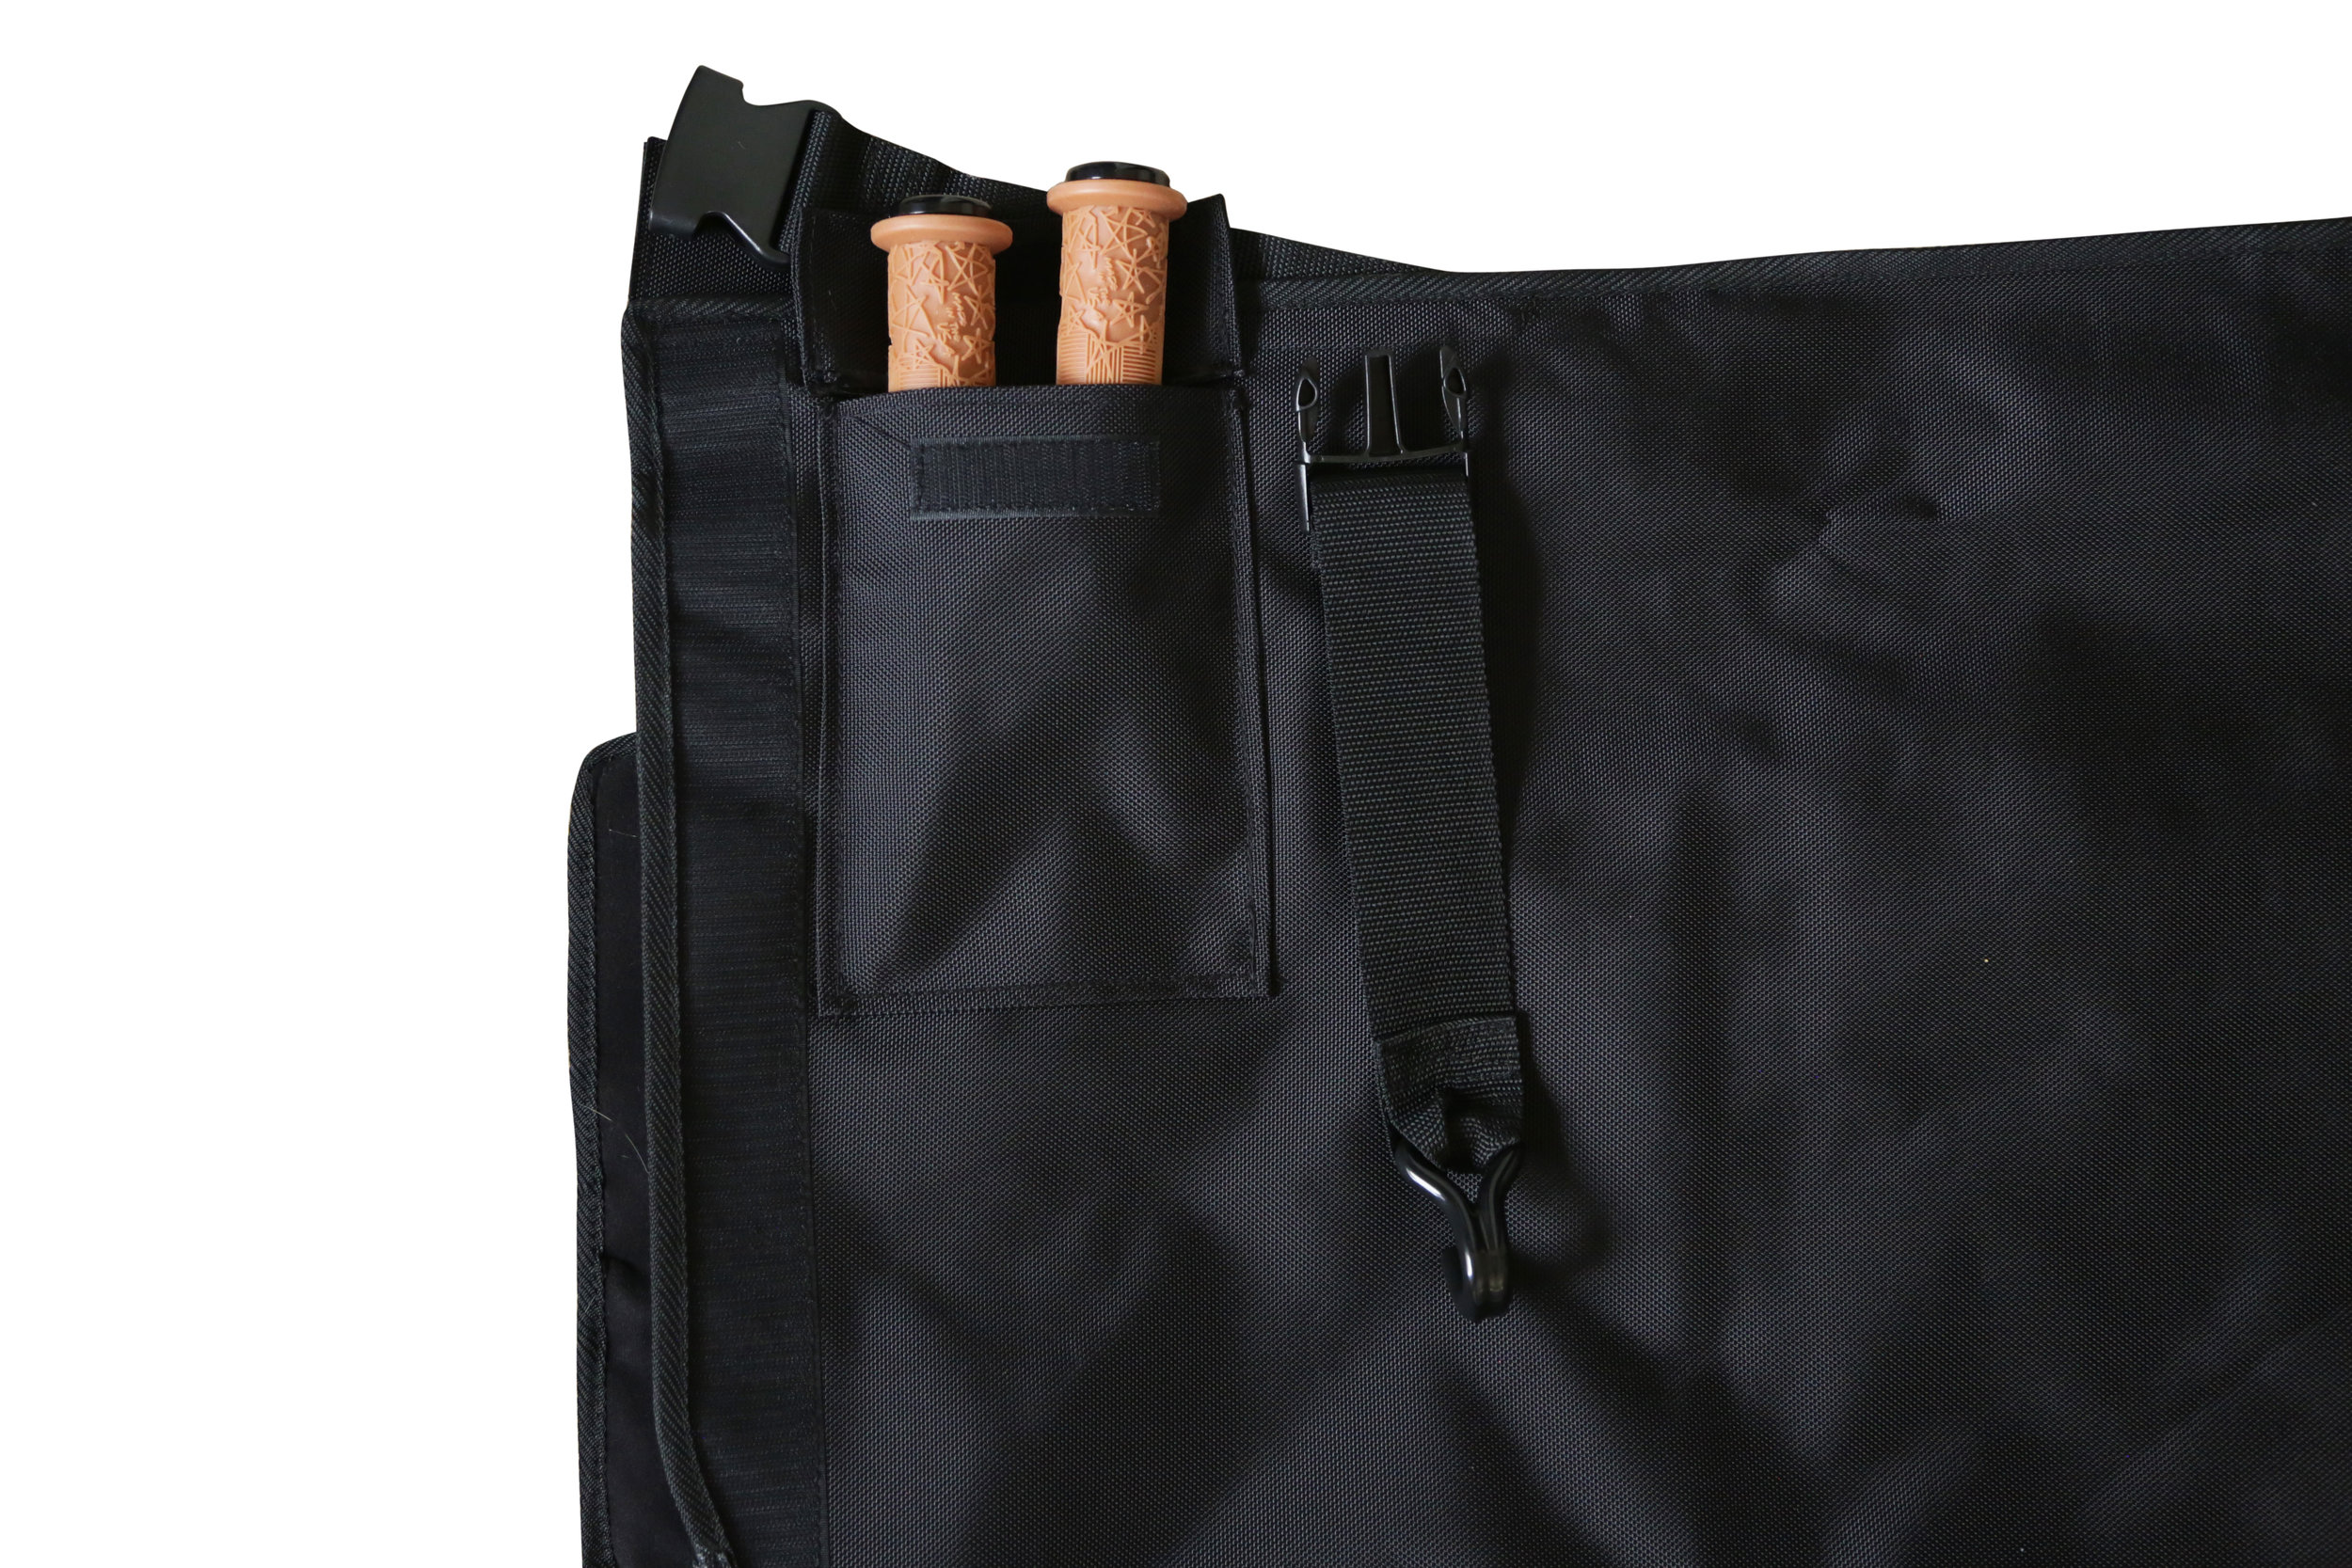 HIDDEN POCKETS - WHEN THE PAD IS CLOSED, OUR STASH POCKETS ARE HIDDEN FROM THIEVES' EYES. ALSO USED TO KEEP SEAT BACK BUCKLES WHEN NOT USING THE BACHELOR PAD CHILL ZONE.